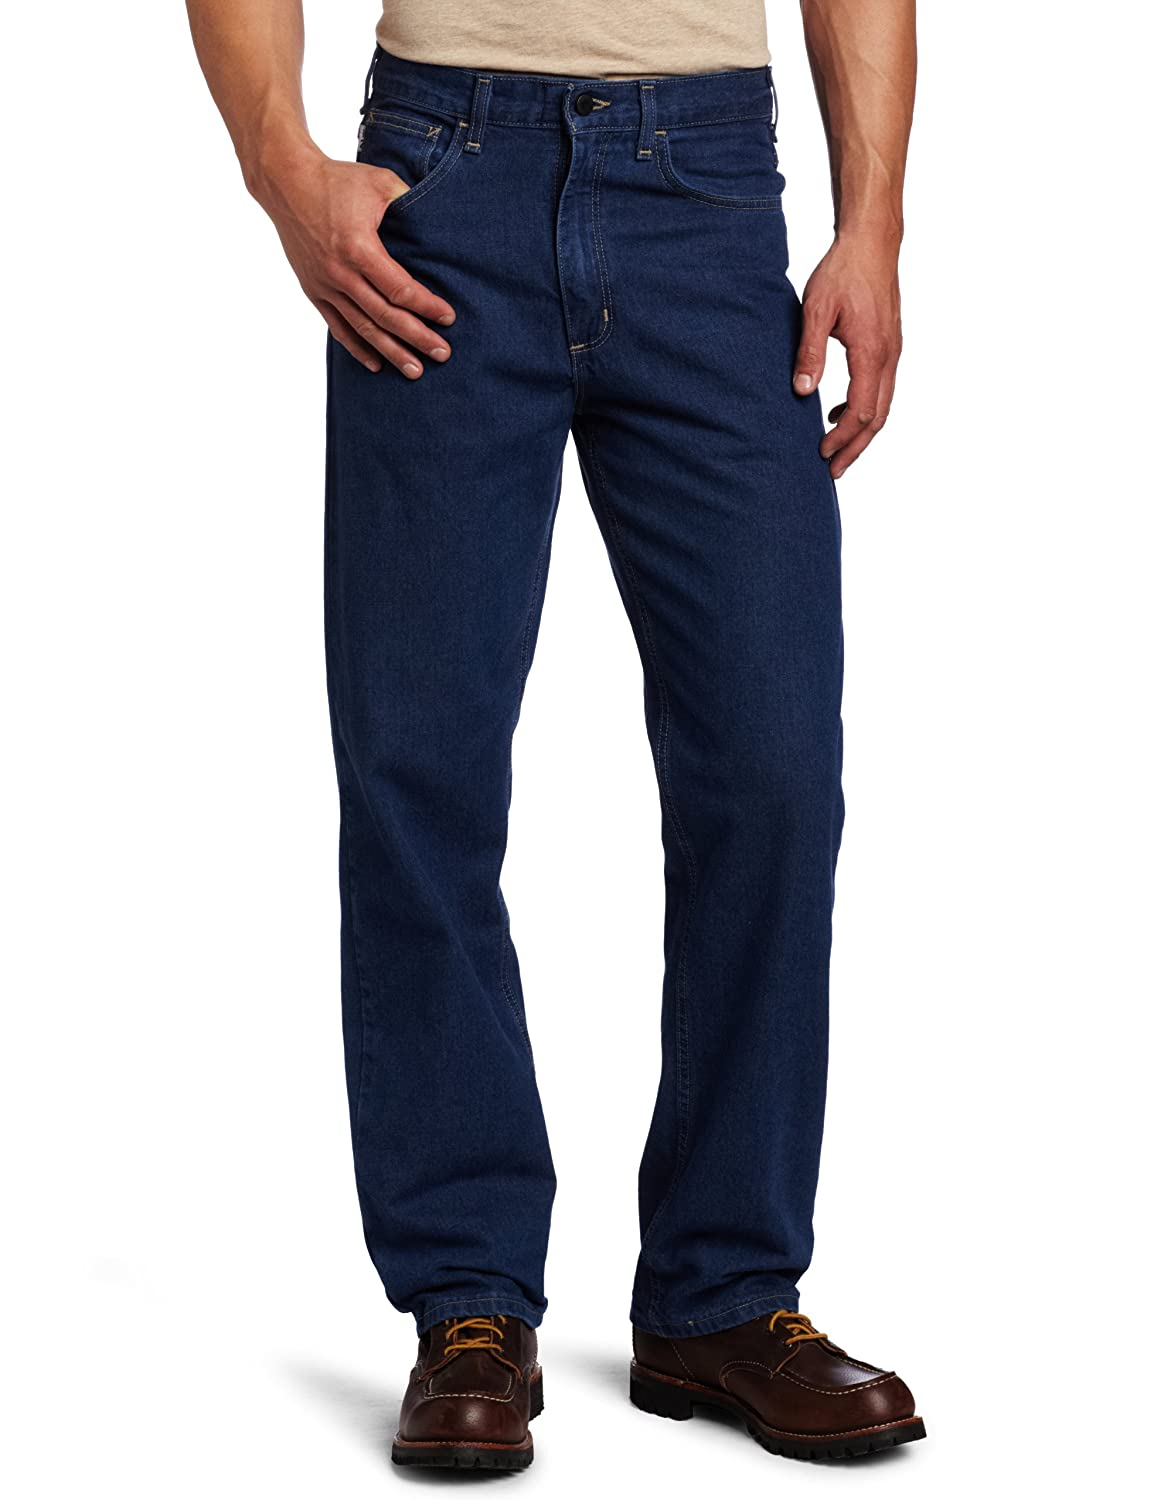 Carhartt Mens Flame Resistant Signature Denim Jean Relaxed Fit Carhartt Sportswear - Mens FRB100-DNM